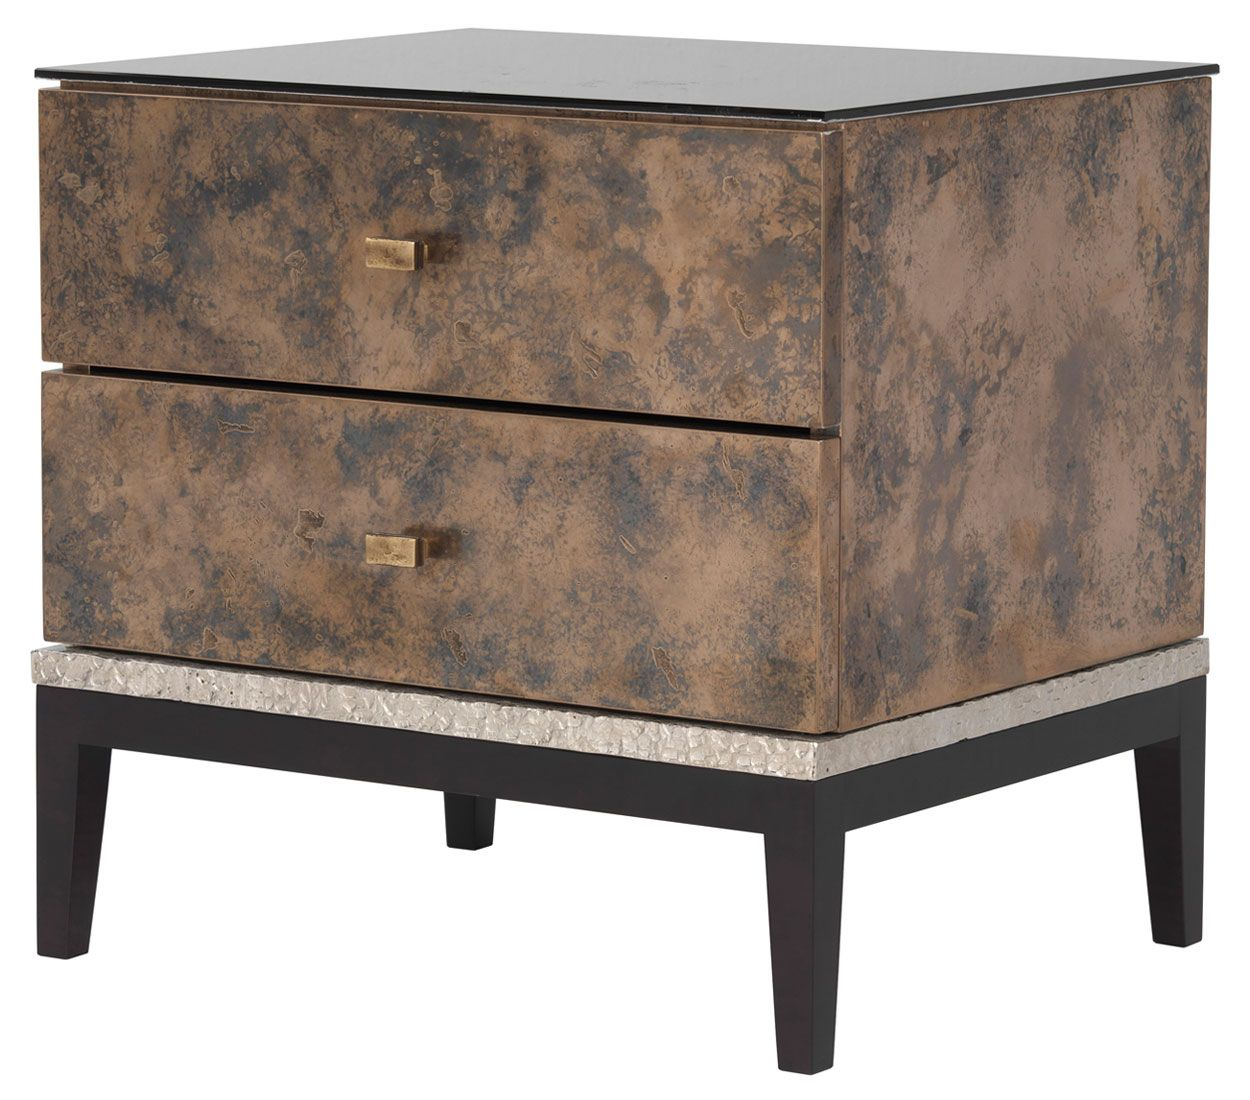 Monaco Nightstand, Nightstands and Chest of Drawers, Furniture ...